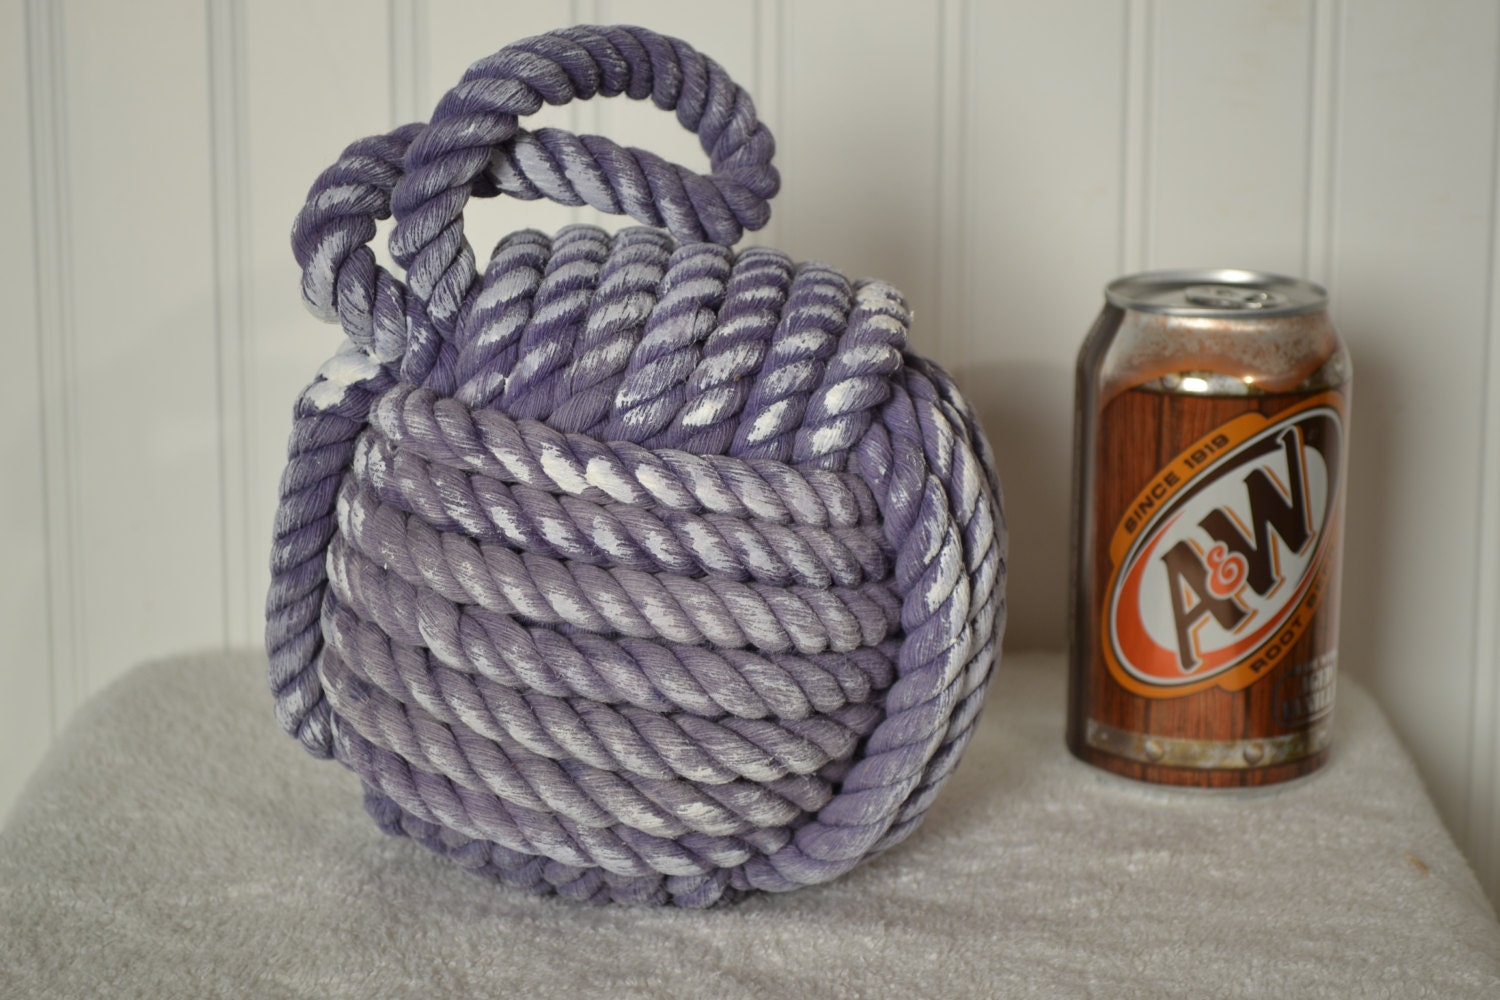 Nautical decor monkey 39 s fist knot door stop in purple - Knot door stopper ...